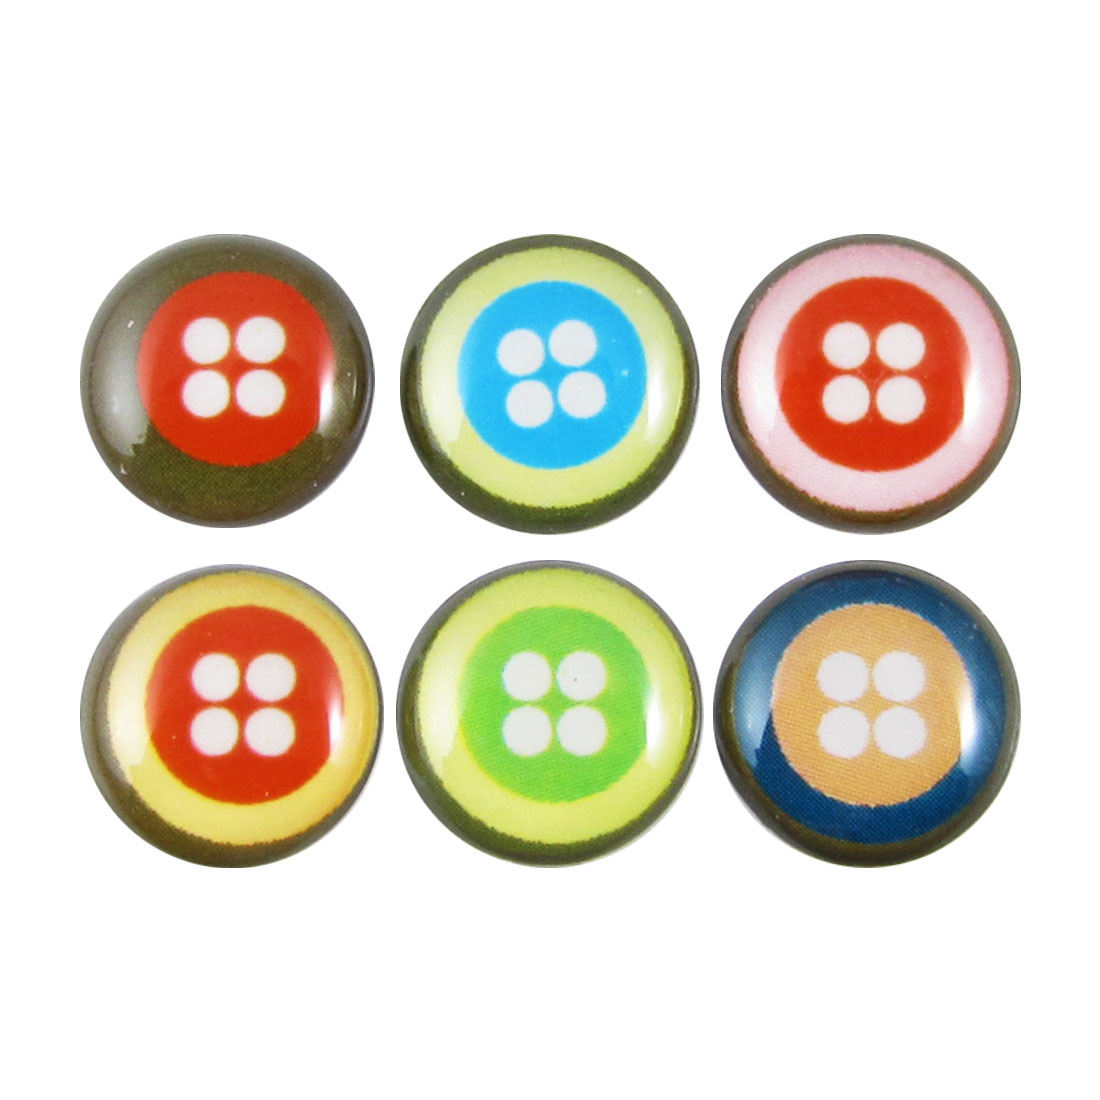 Colorful Dots Home Button Stickers 6 in 1 for Cell Phone